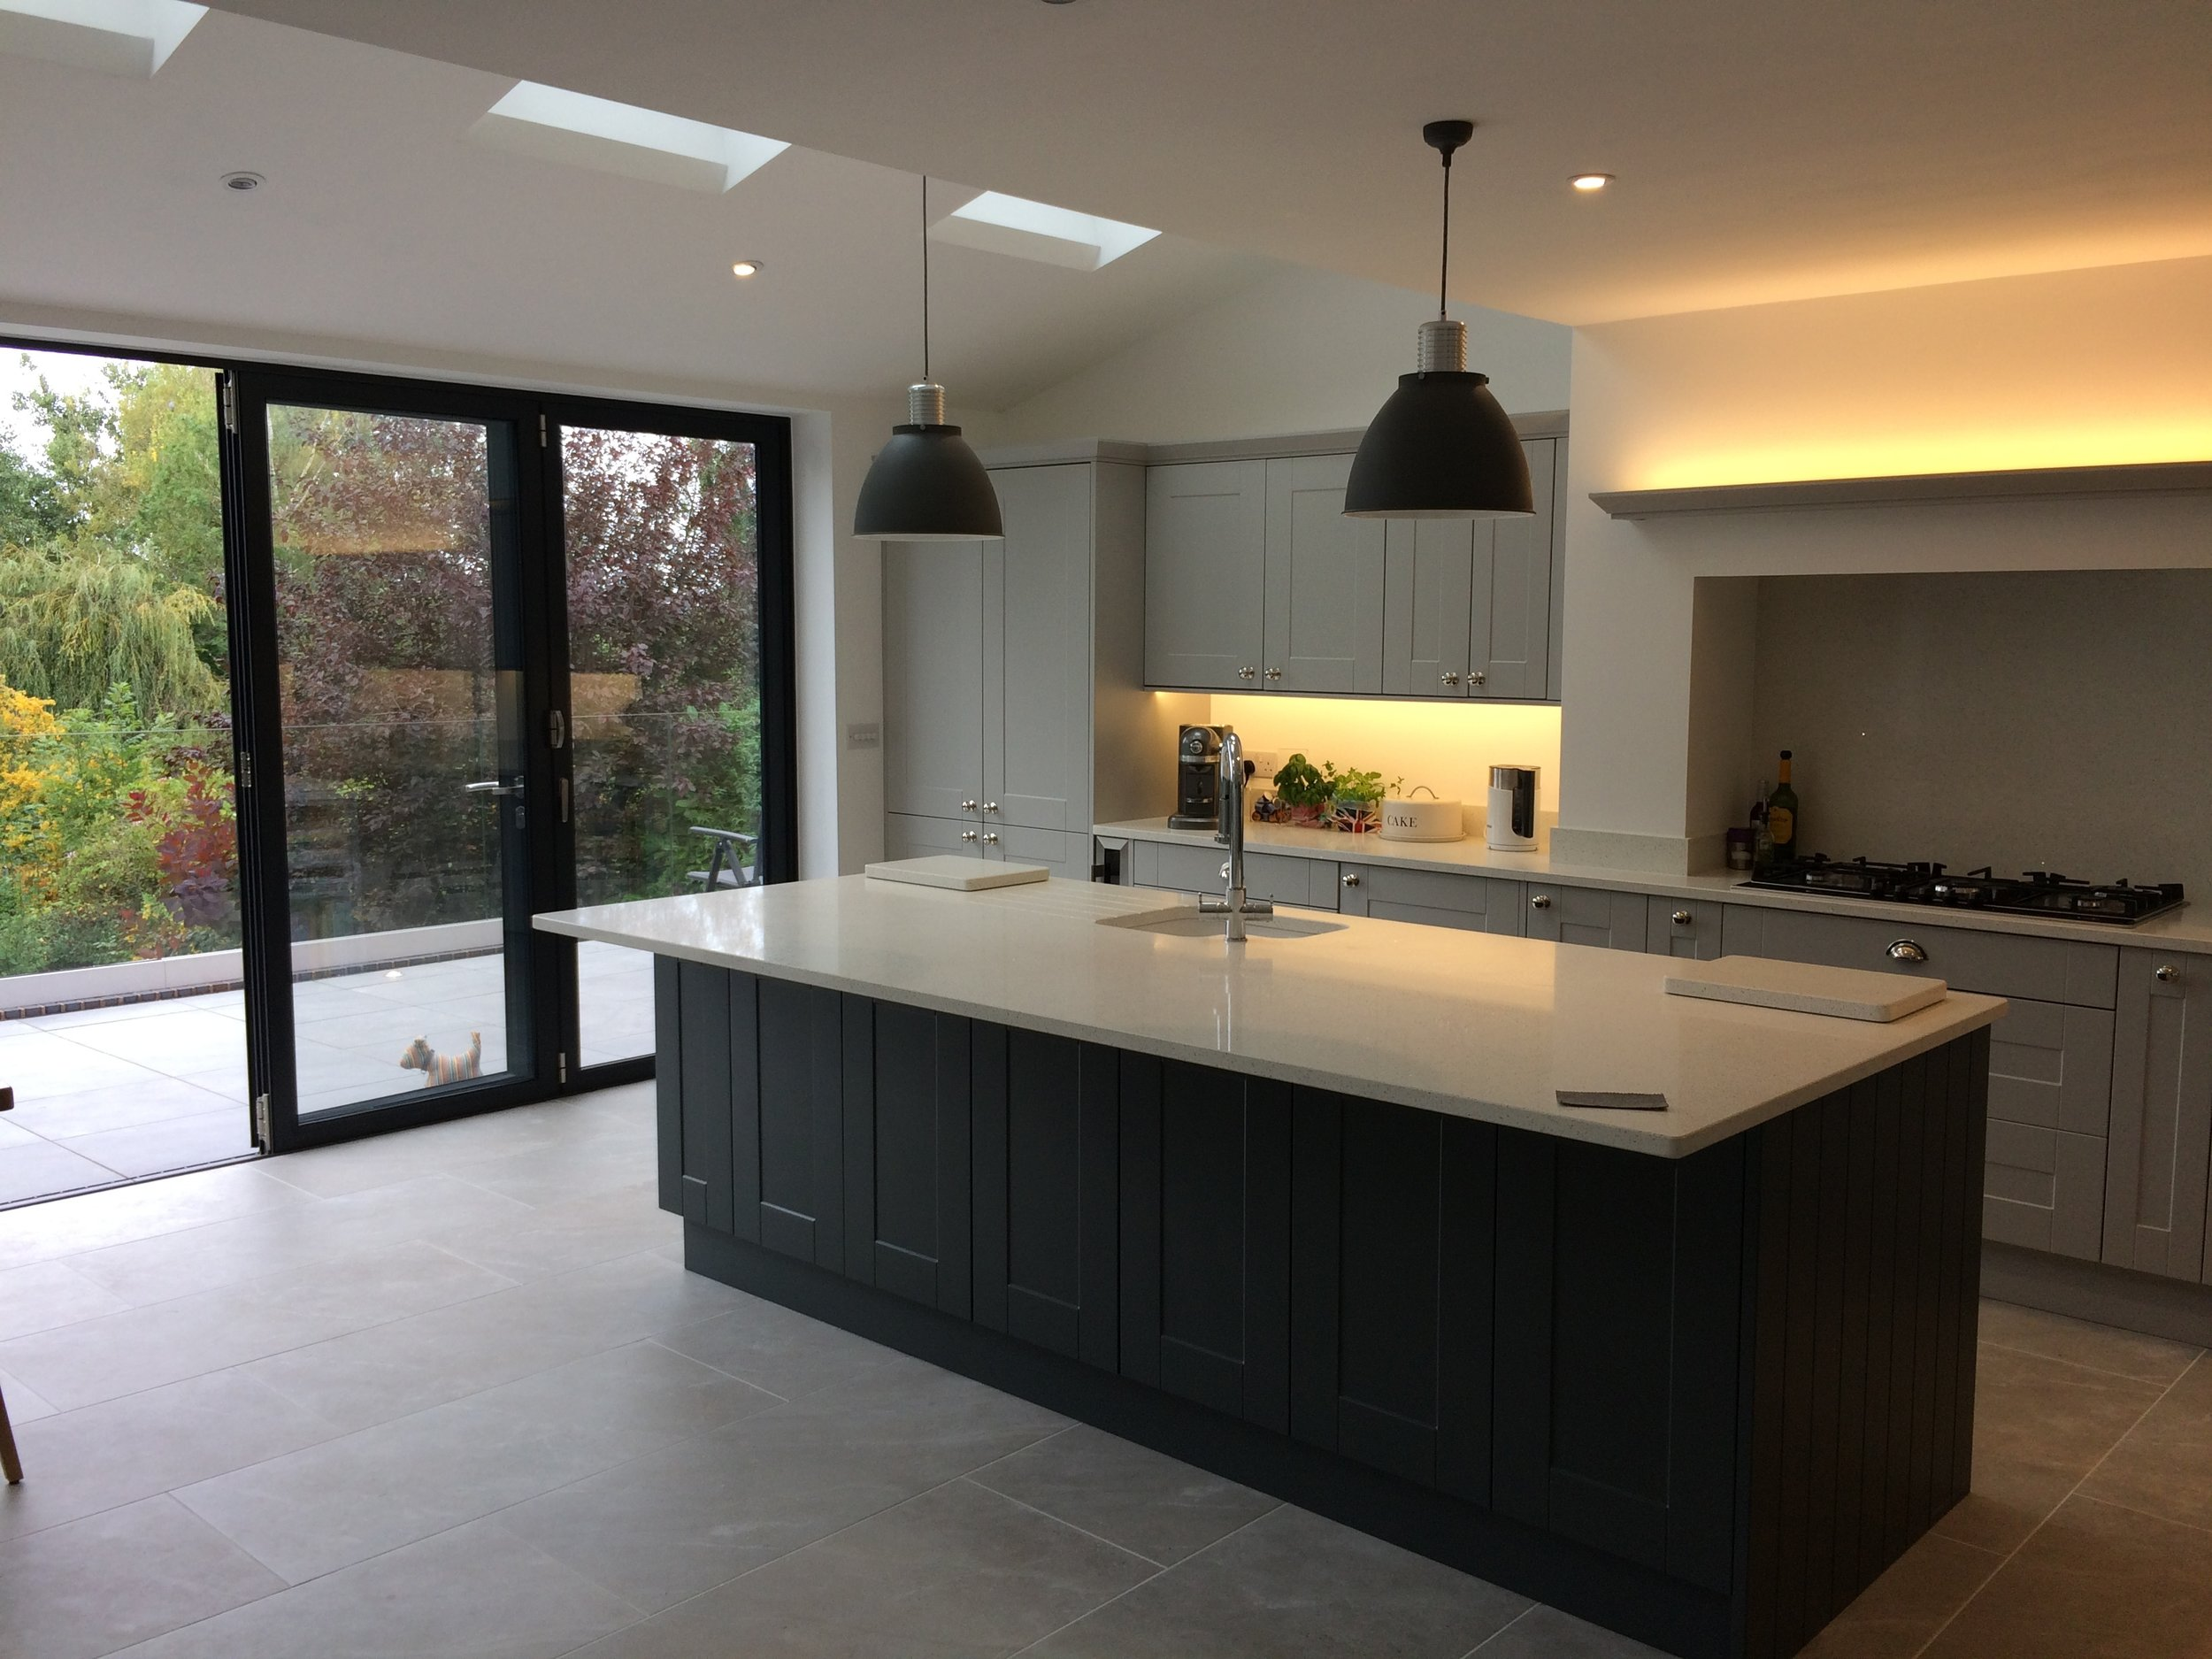 large bi-fold doors emphasis the kitchen's elevated position amongst the trees